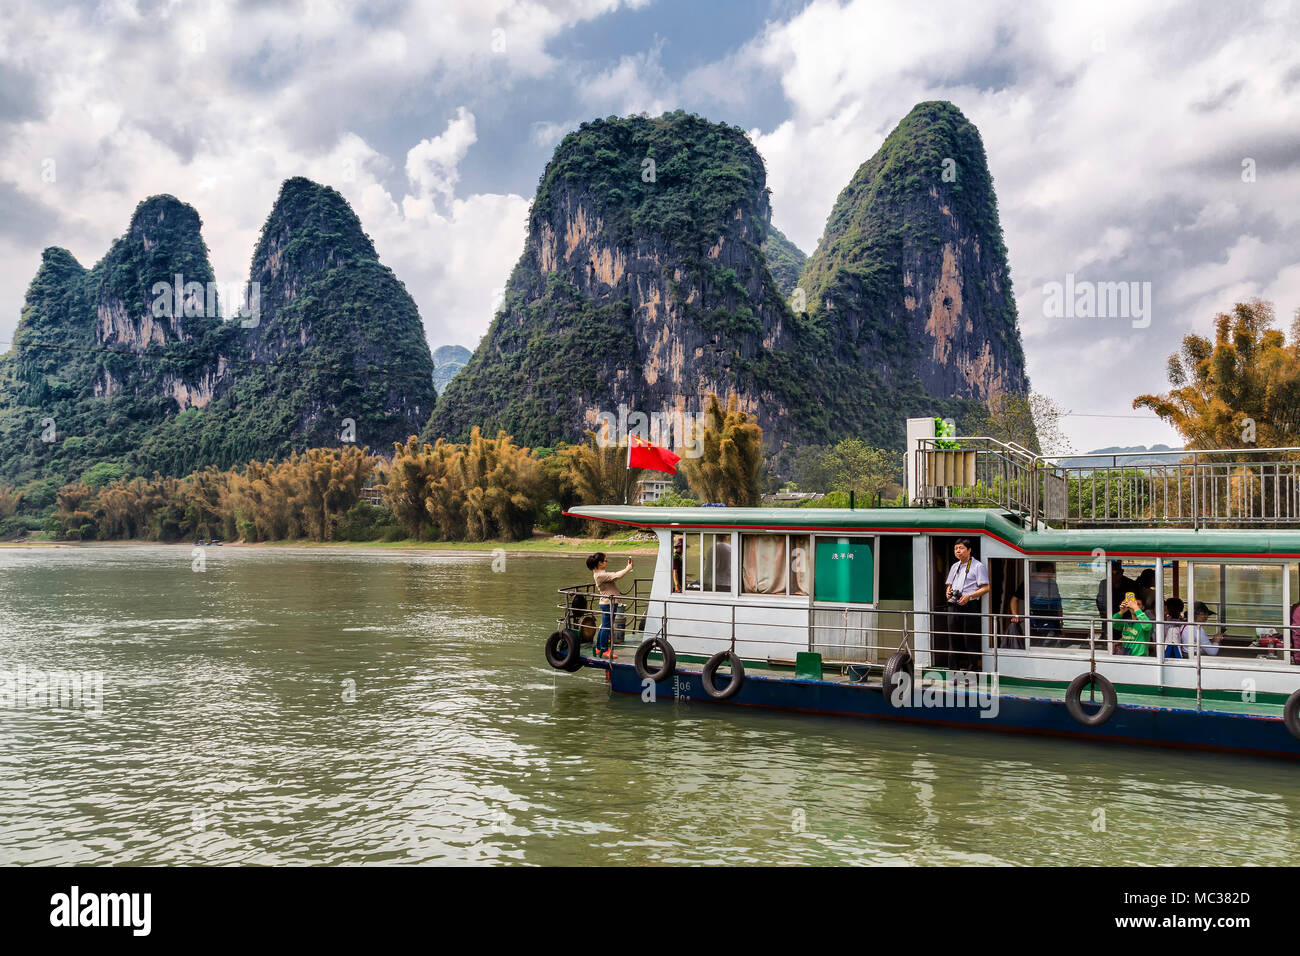 A tourist boat carries passengers along the Li River, Yanshuo, China. They look out at the unusual formation of the karst mountains. - Stock Image